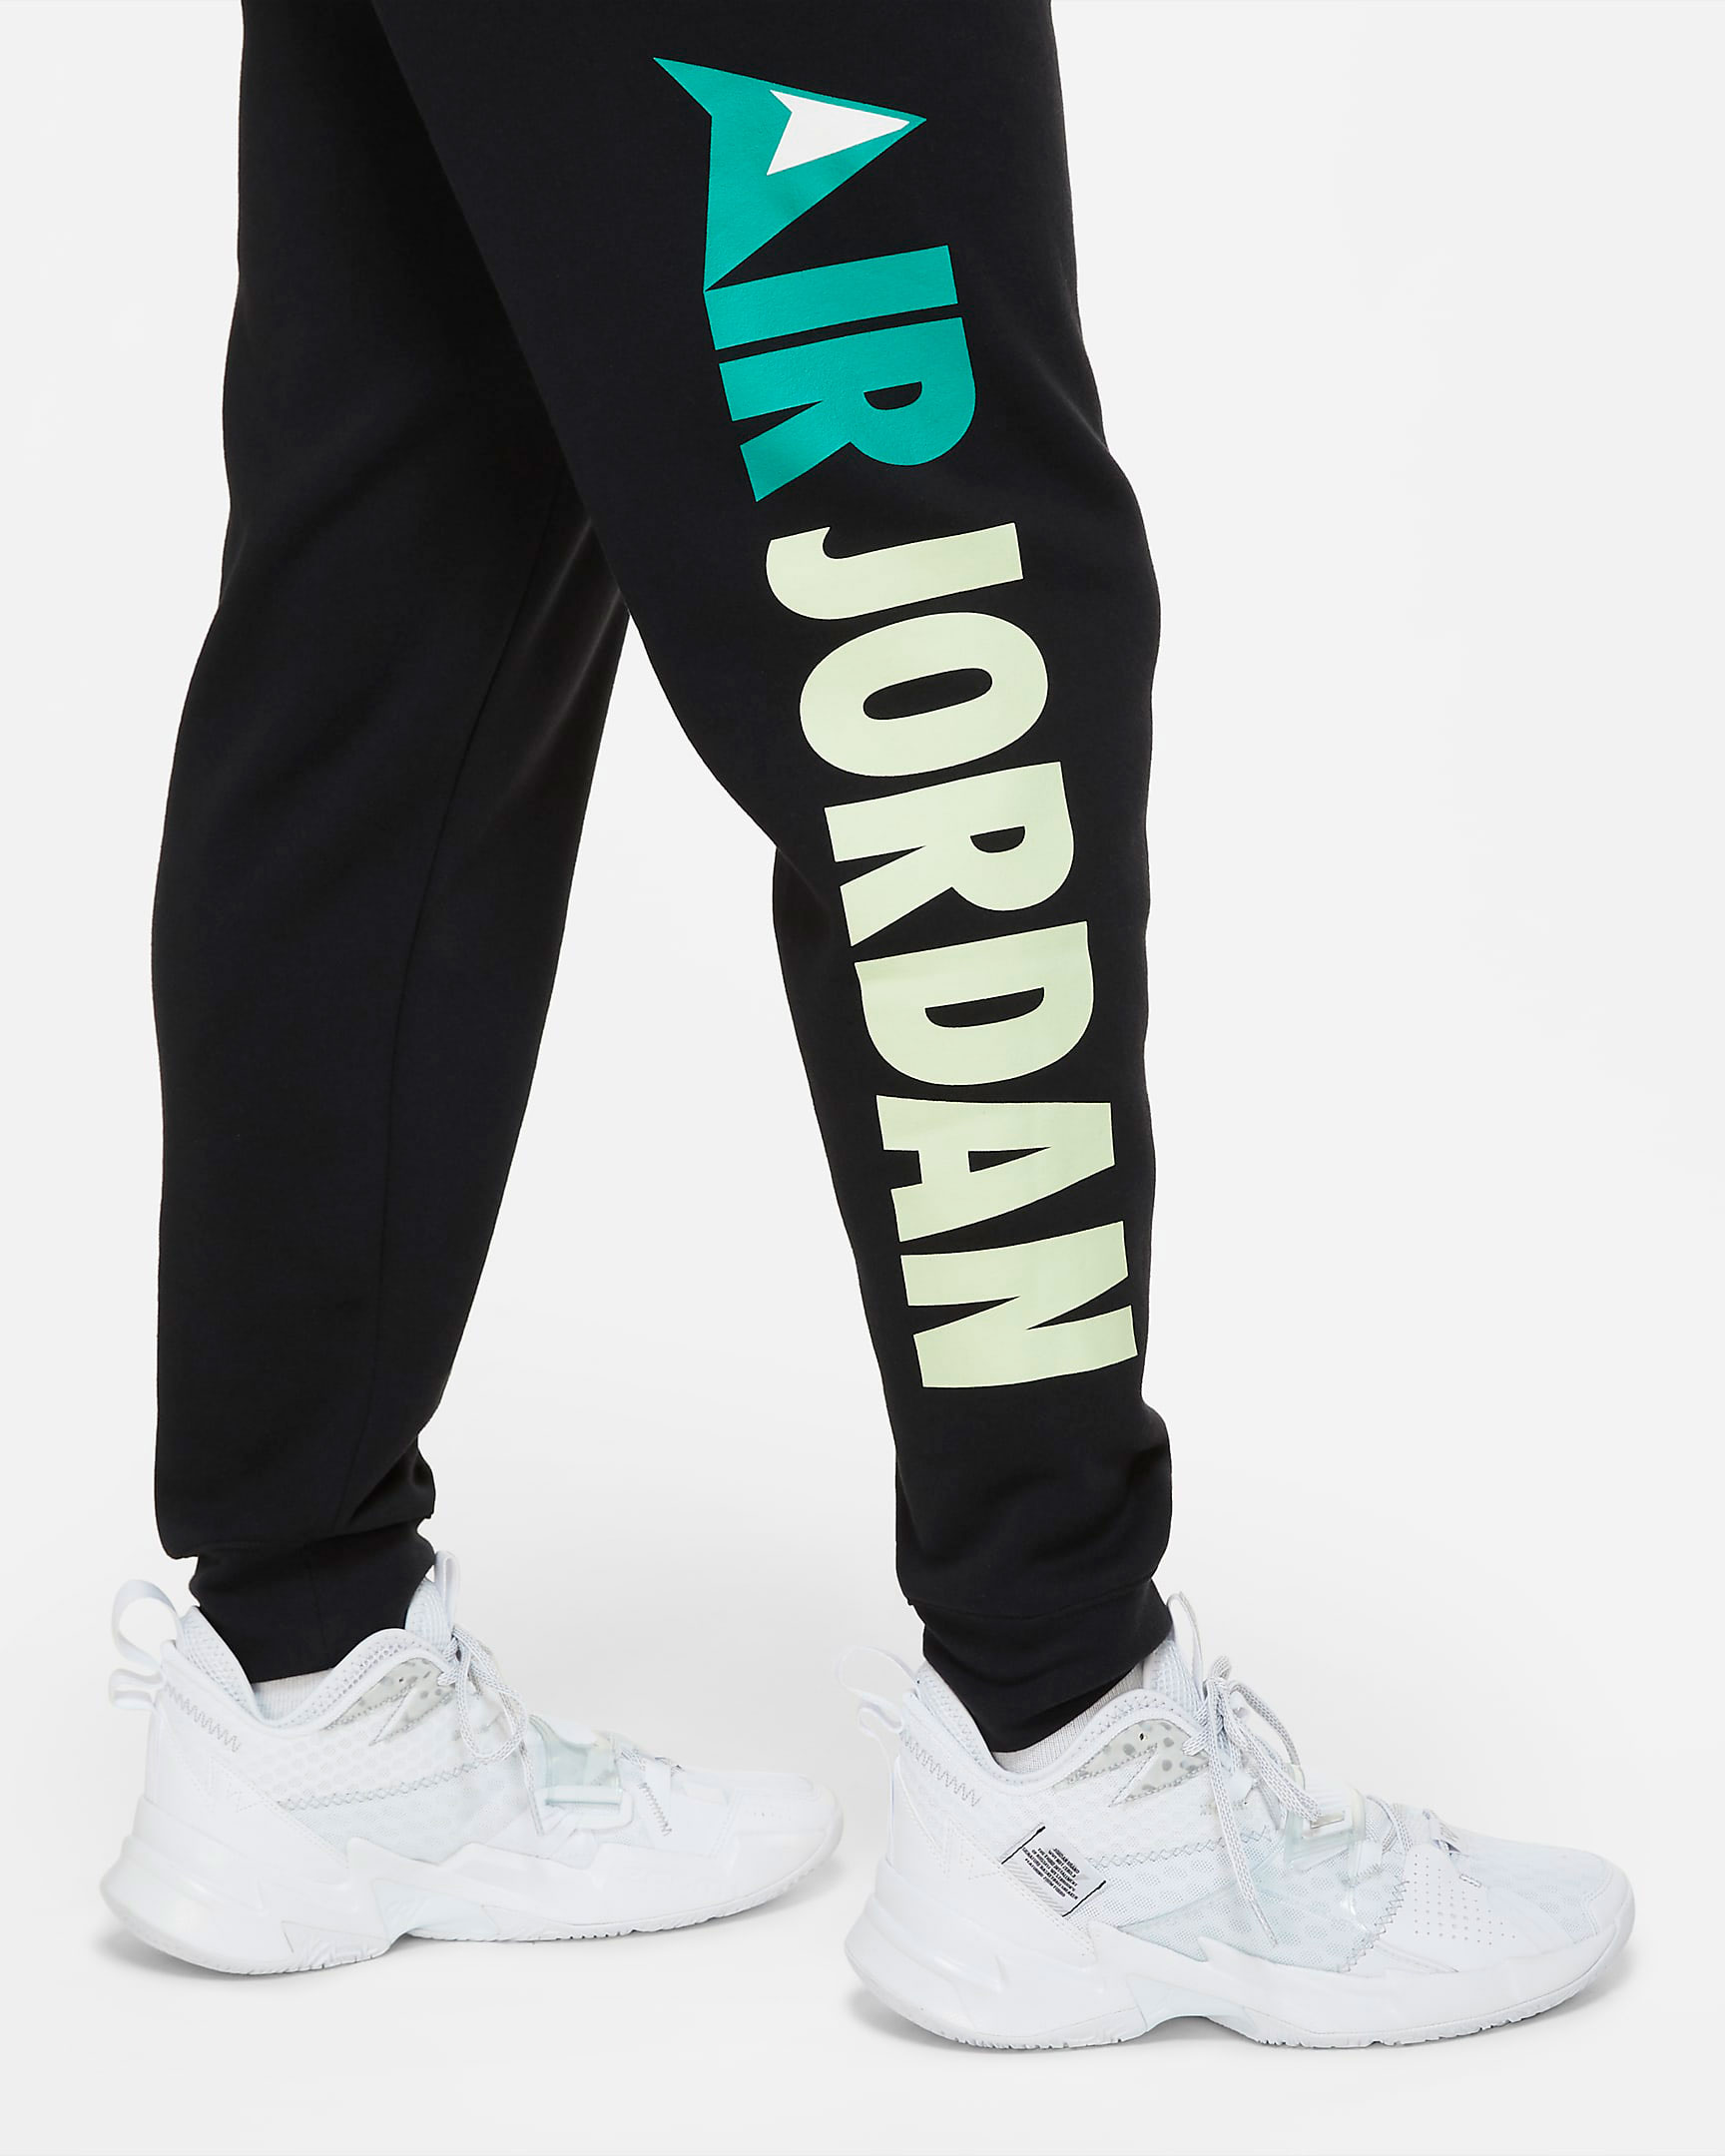 jordan-winter-utility-pants-black-pink-green-5